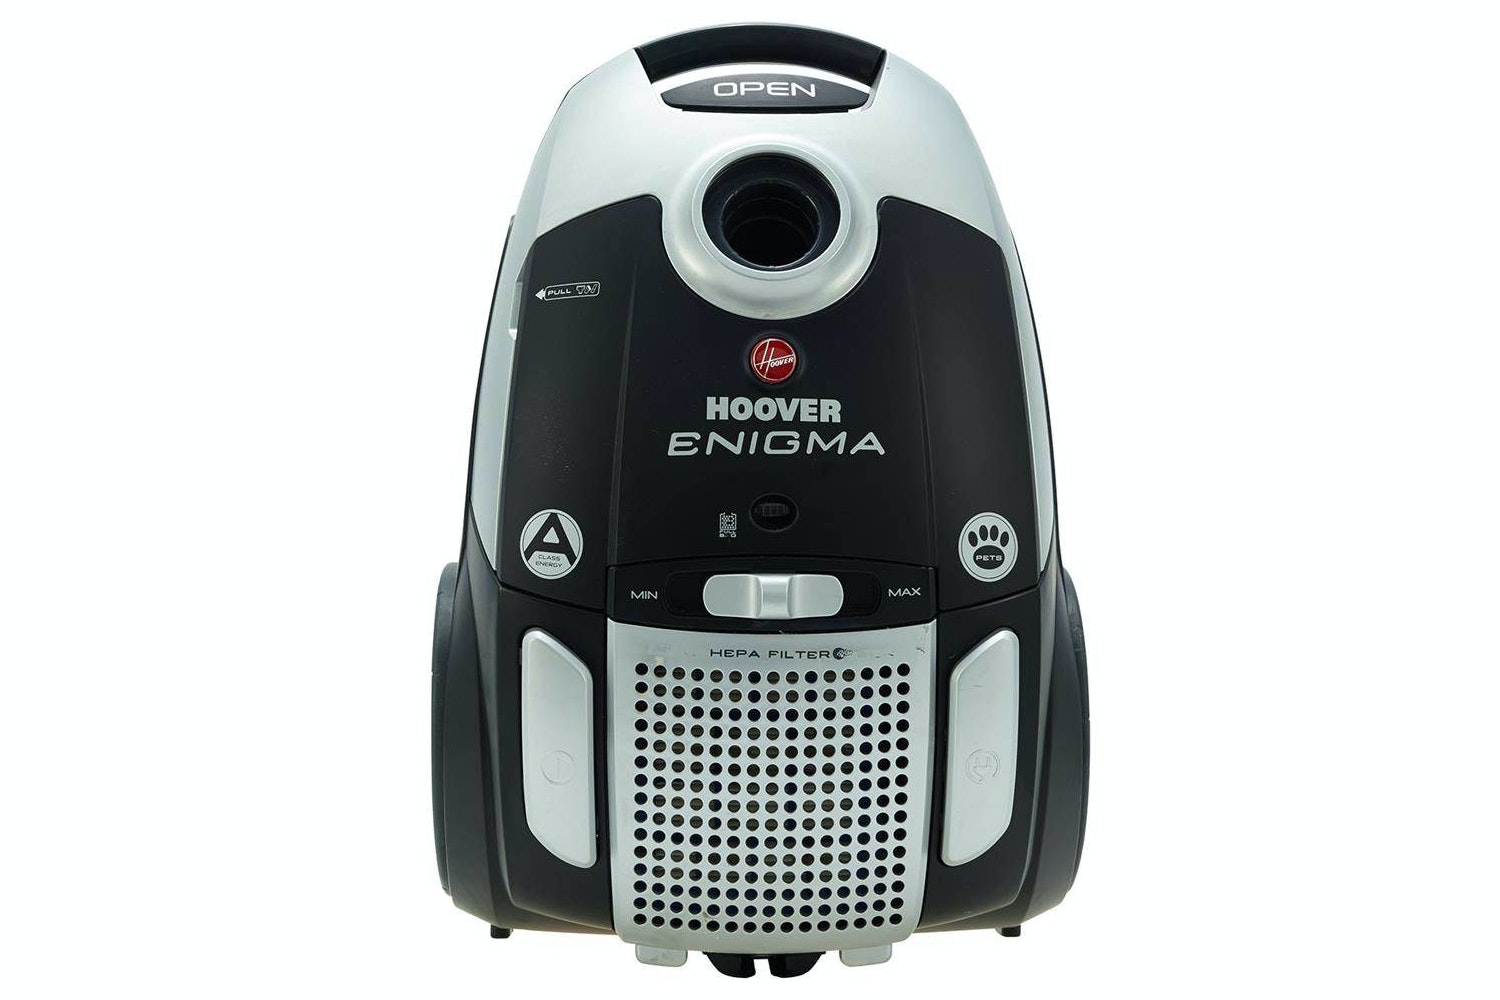 Hoover Enigma Pets Bagged Vacuum Cleaner | Black & Silver